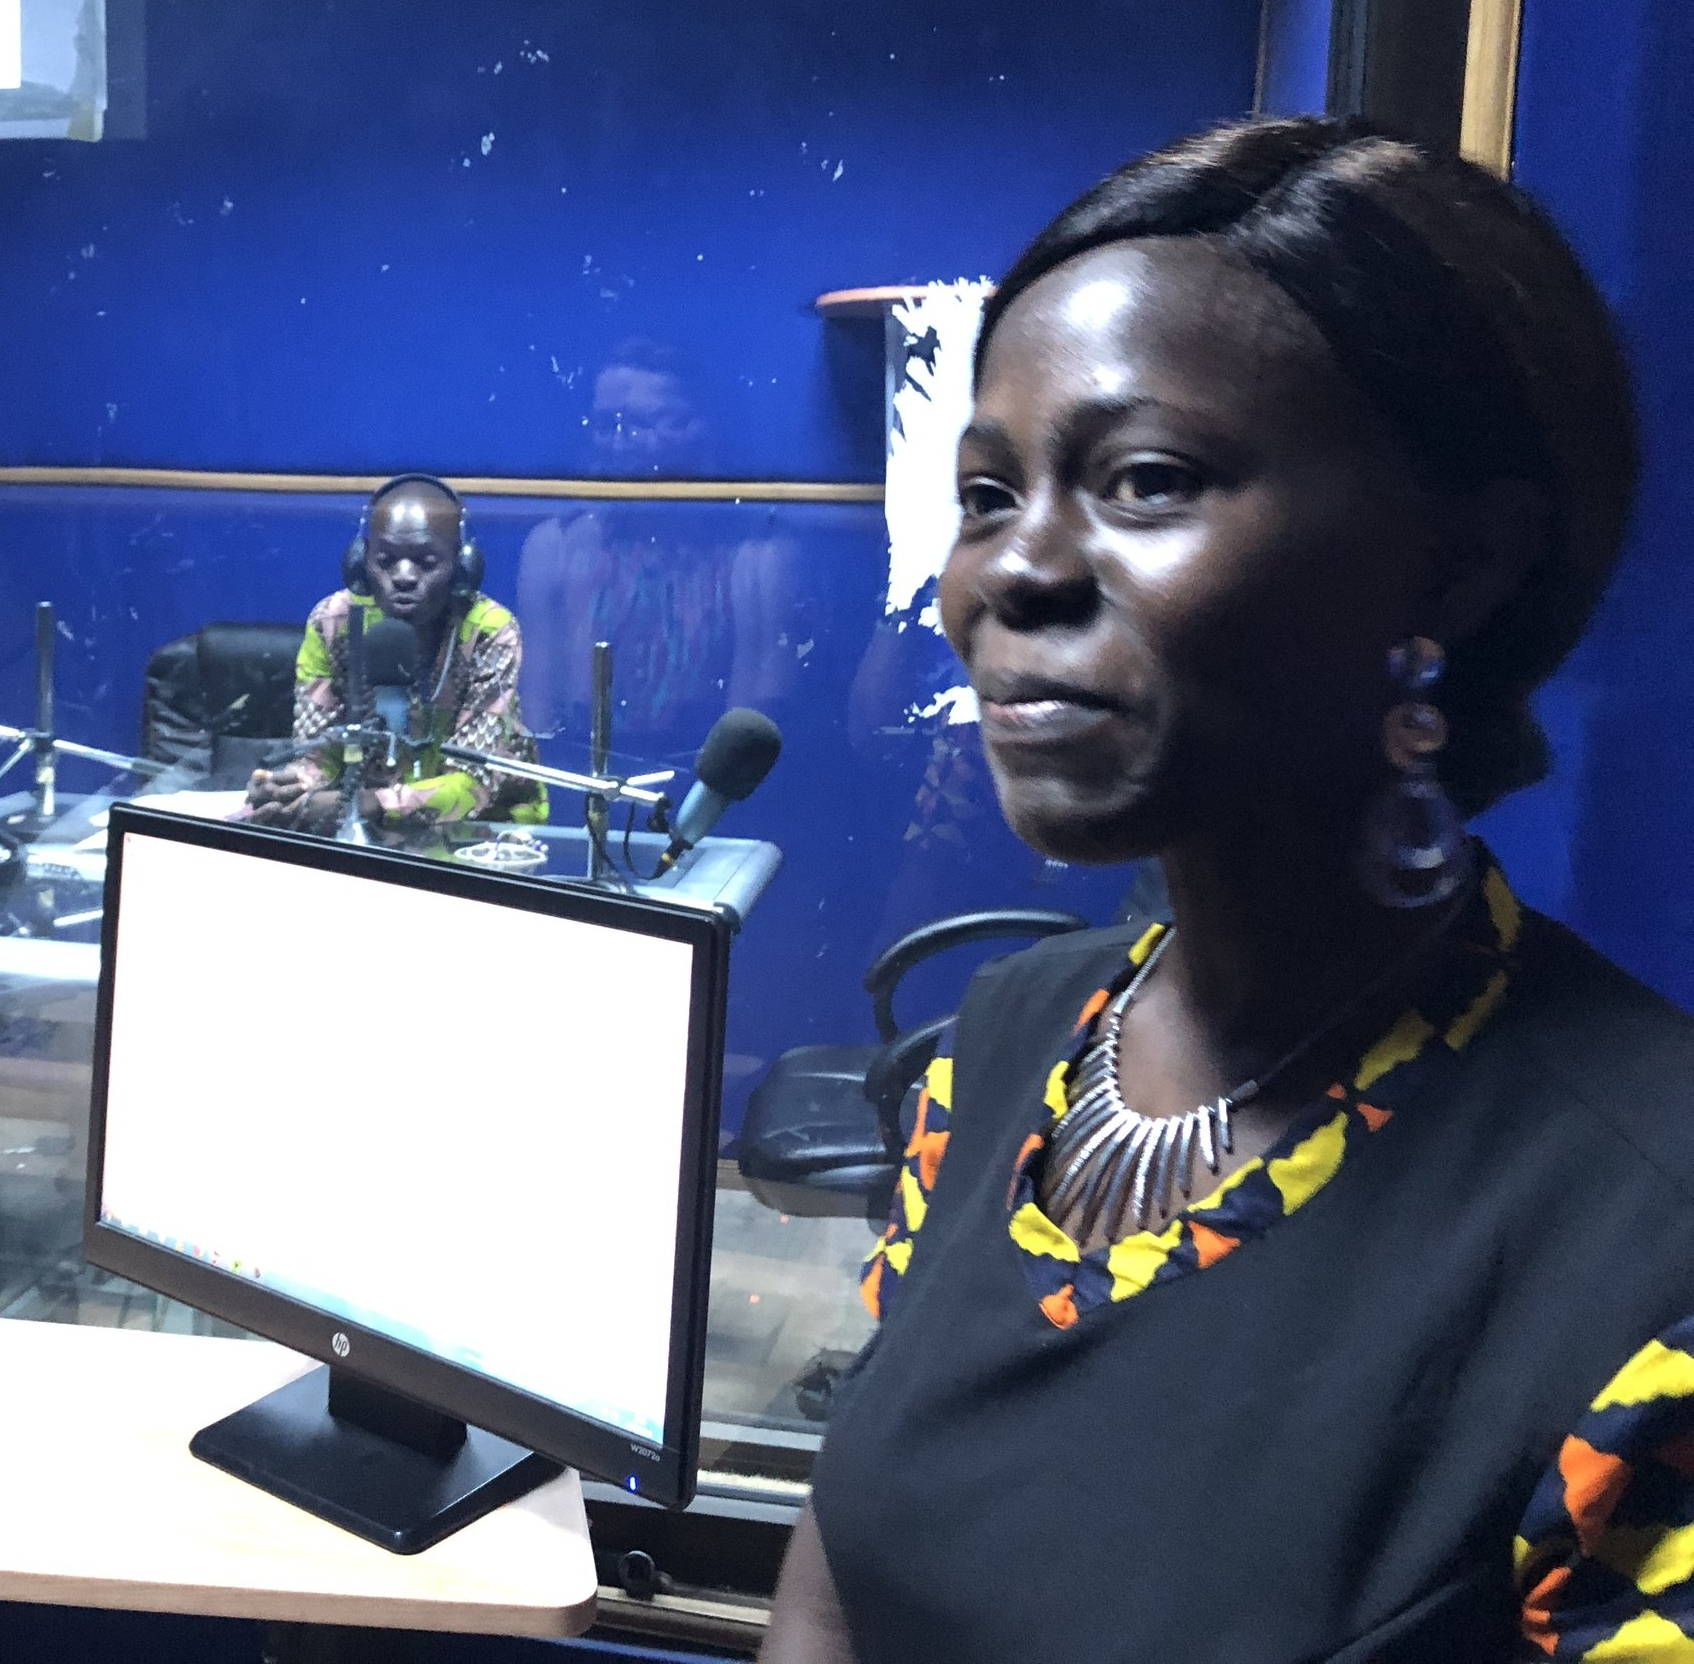 The managing editor of Ocean FM, in her radio station's control room.